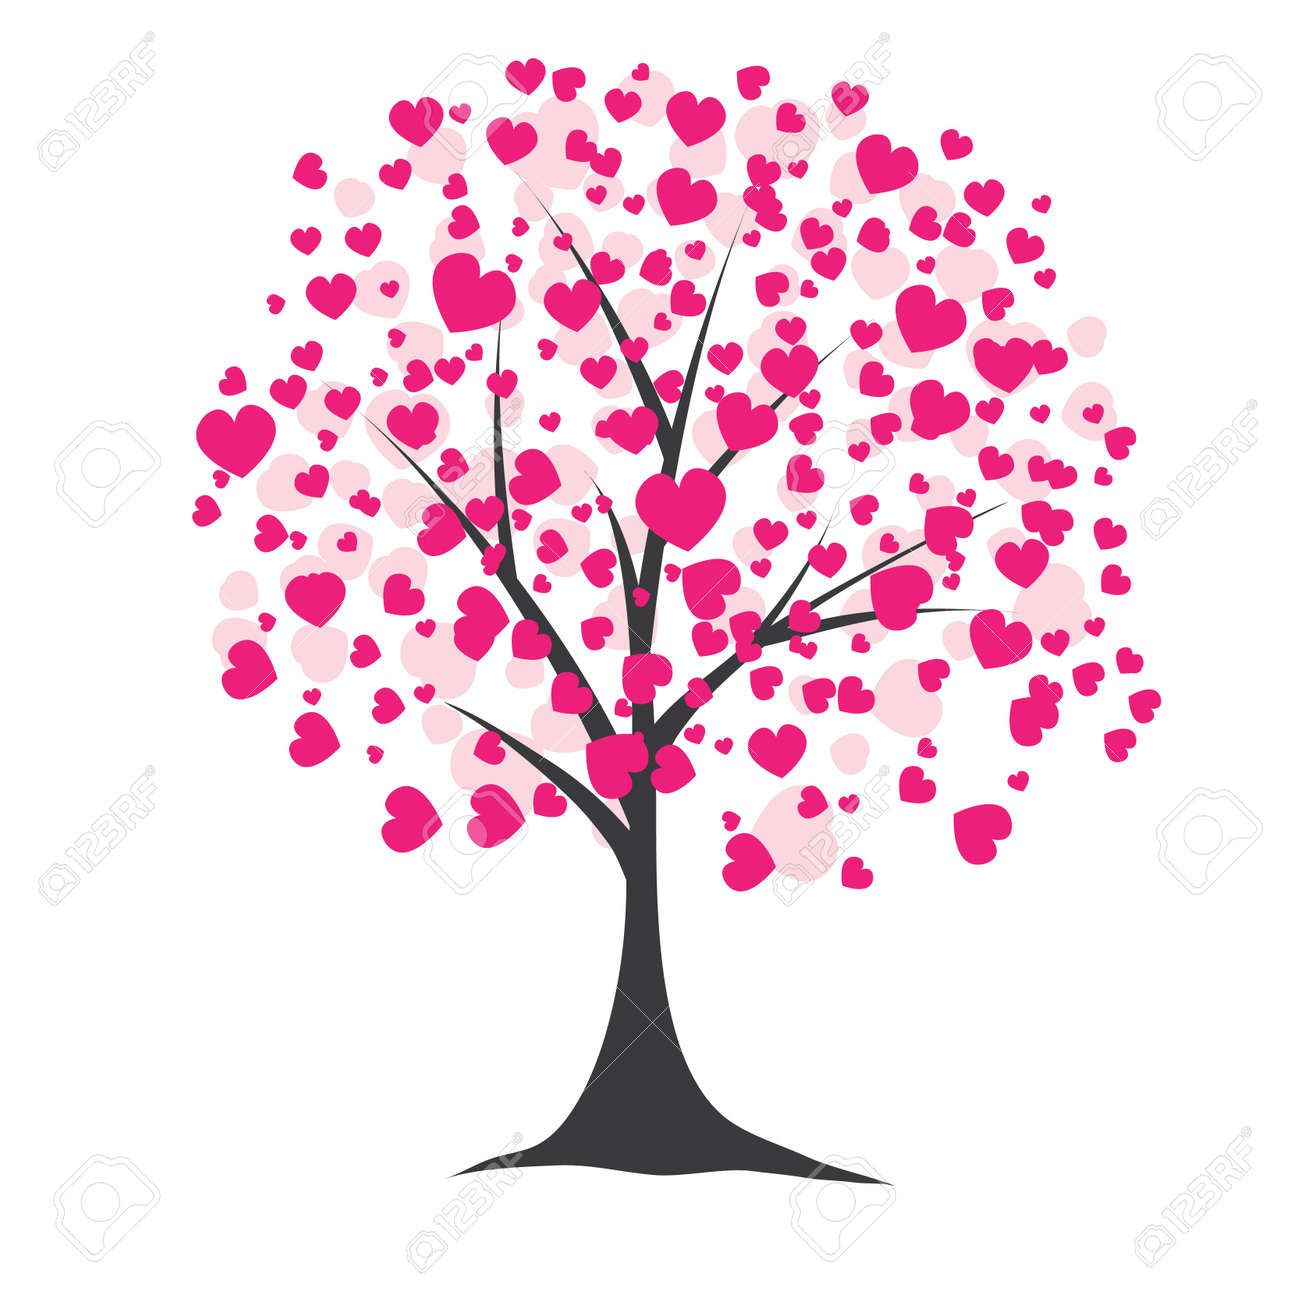 love tree stock photos royalty free love tree images and pictures